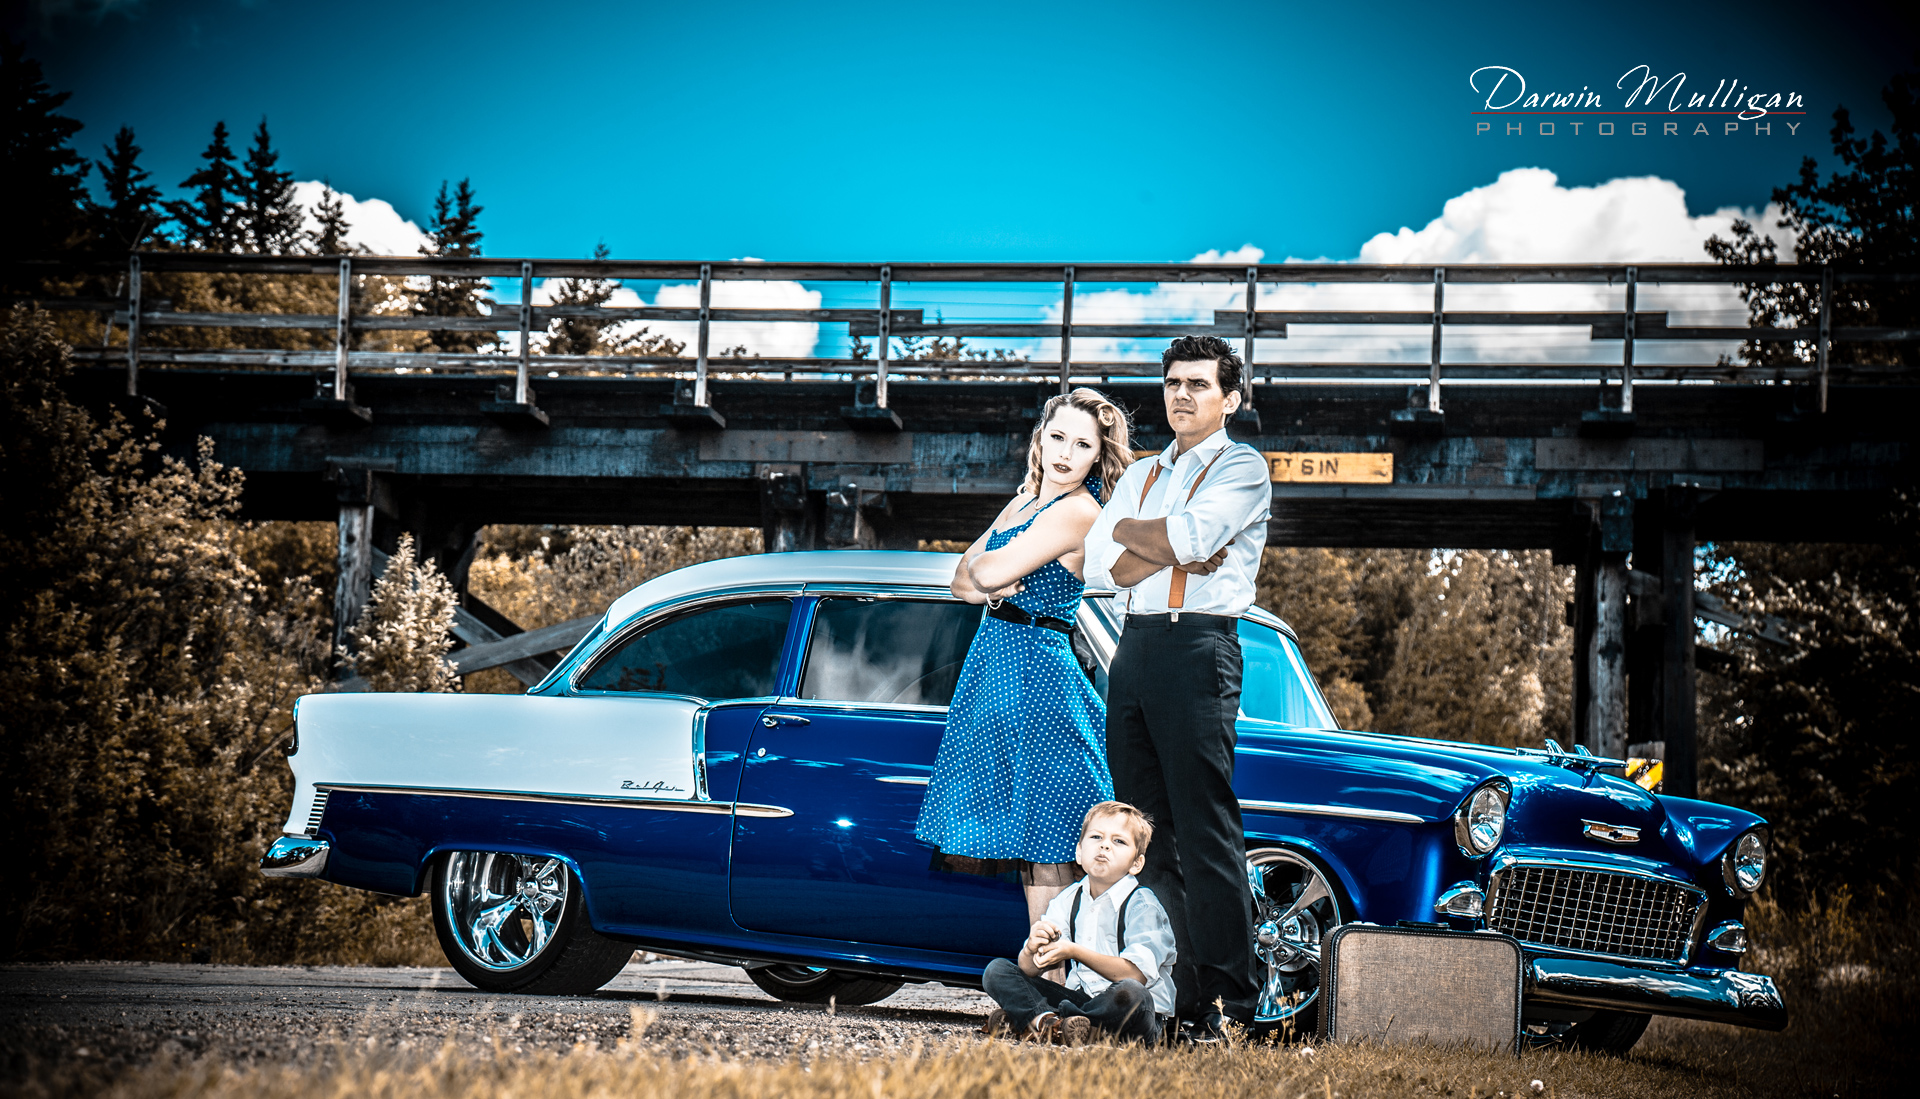 1955 Chevy Bel Air with couple and child posing